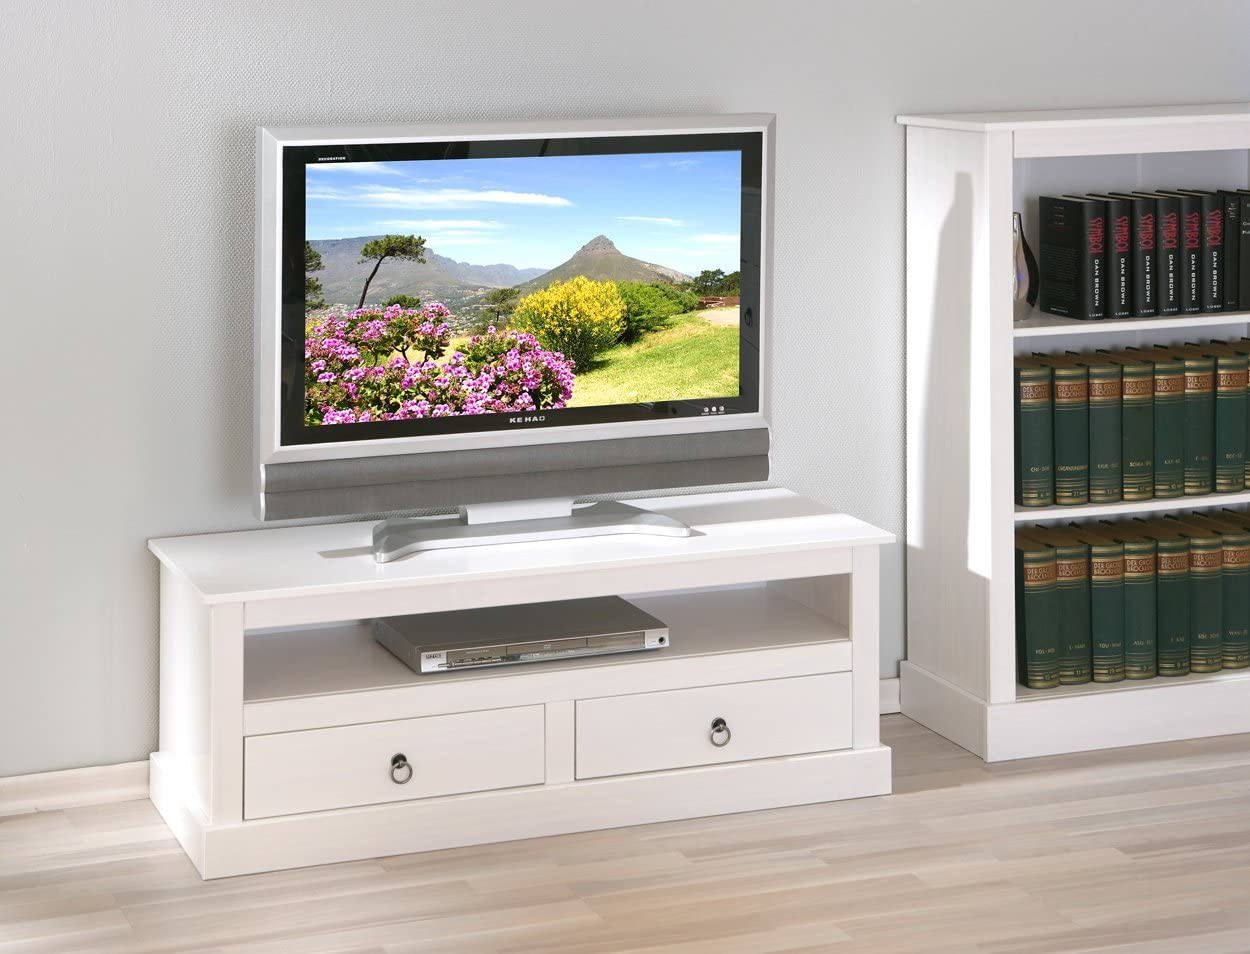 Inter Link Move Mesa de TV Blanca, Pino, 39x45x118: Amazon.es: Hogar